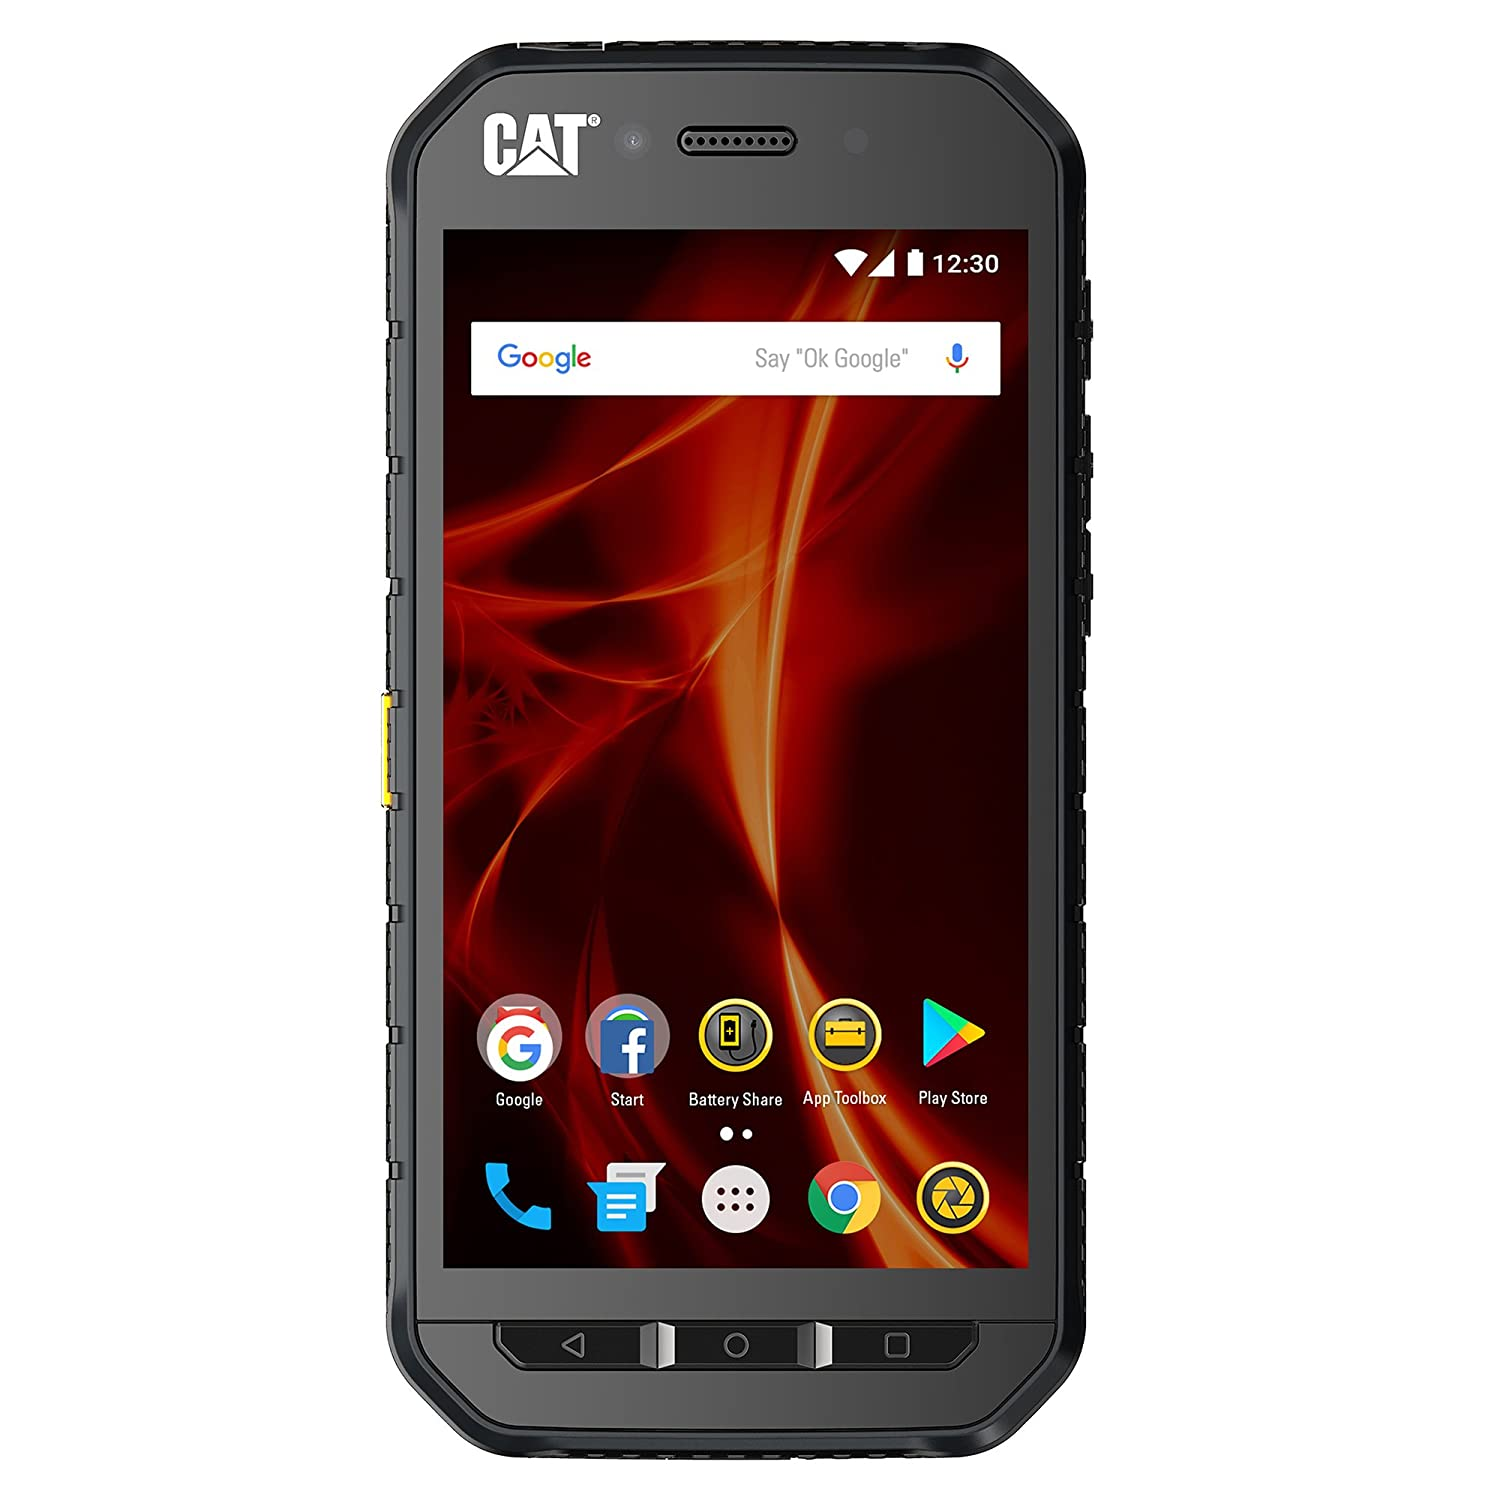 sale retailer c9858 06458 CAT PHONES S41 Unlocked Rugged Waterproof Smartphone, Network Certified  (GSM), US Optimized (Single Sim) with 2-year Warranty Including 2 Year  Screen ...